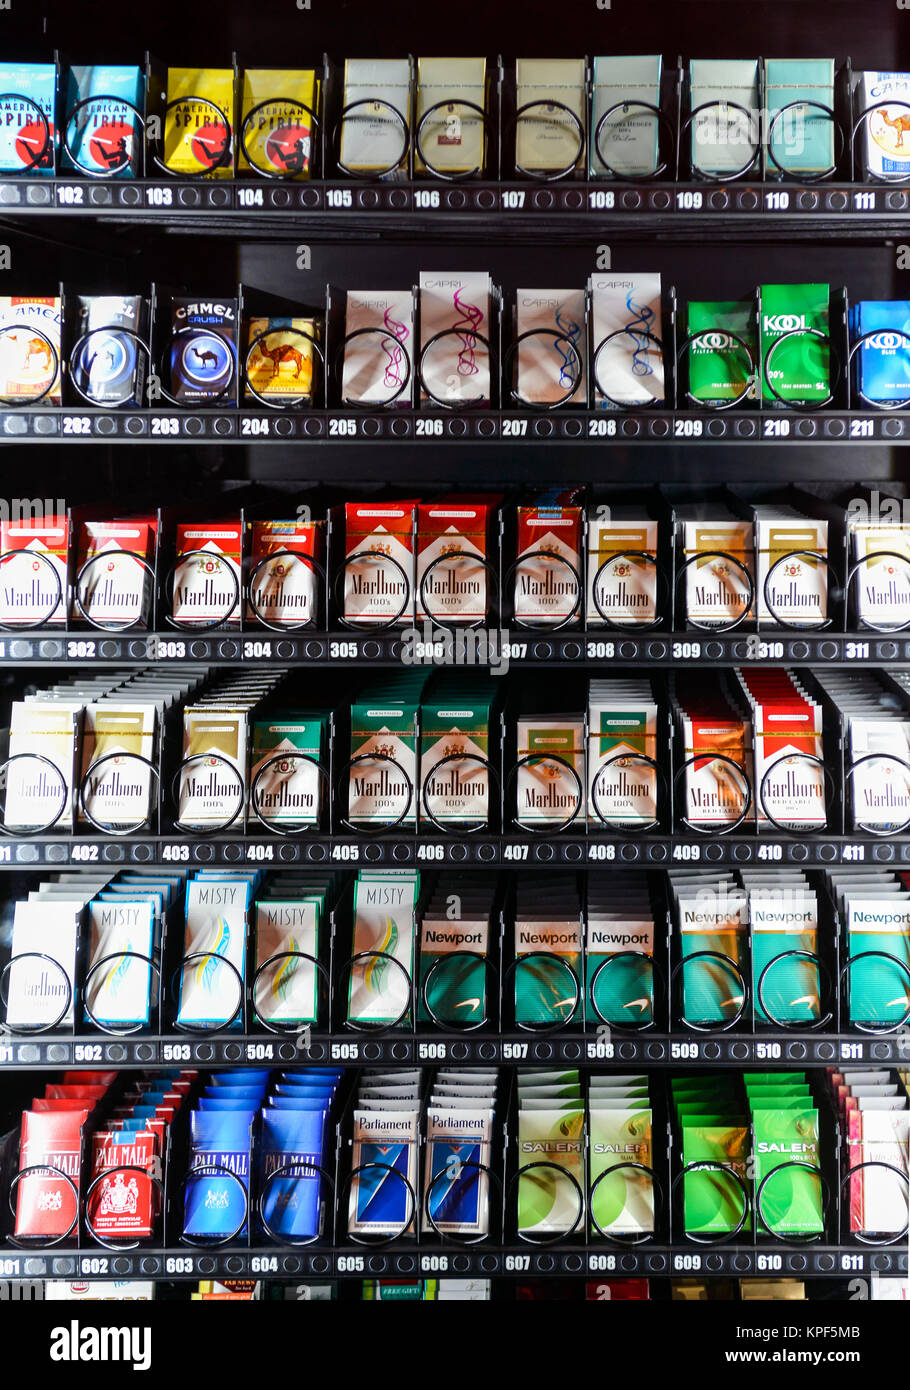 A modern Cigarette Machine with various brnads of cigarettes on display for sale - Stock Image